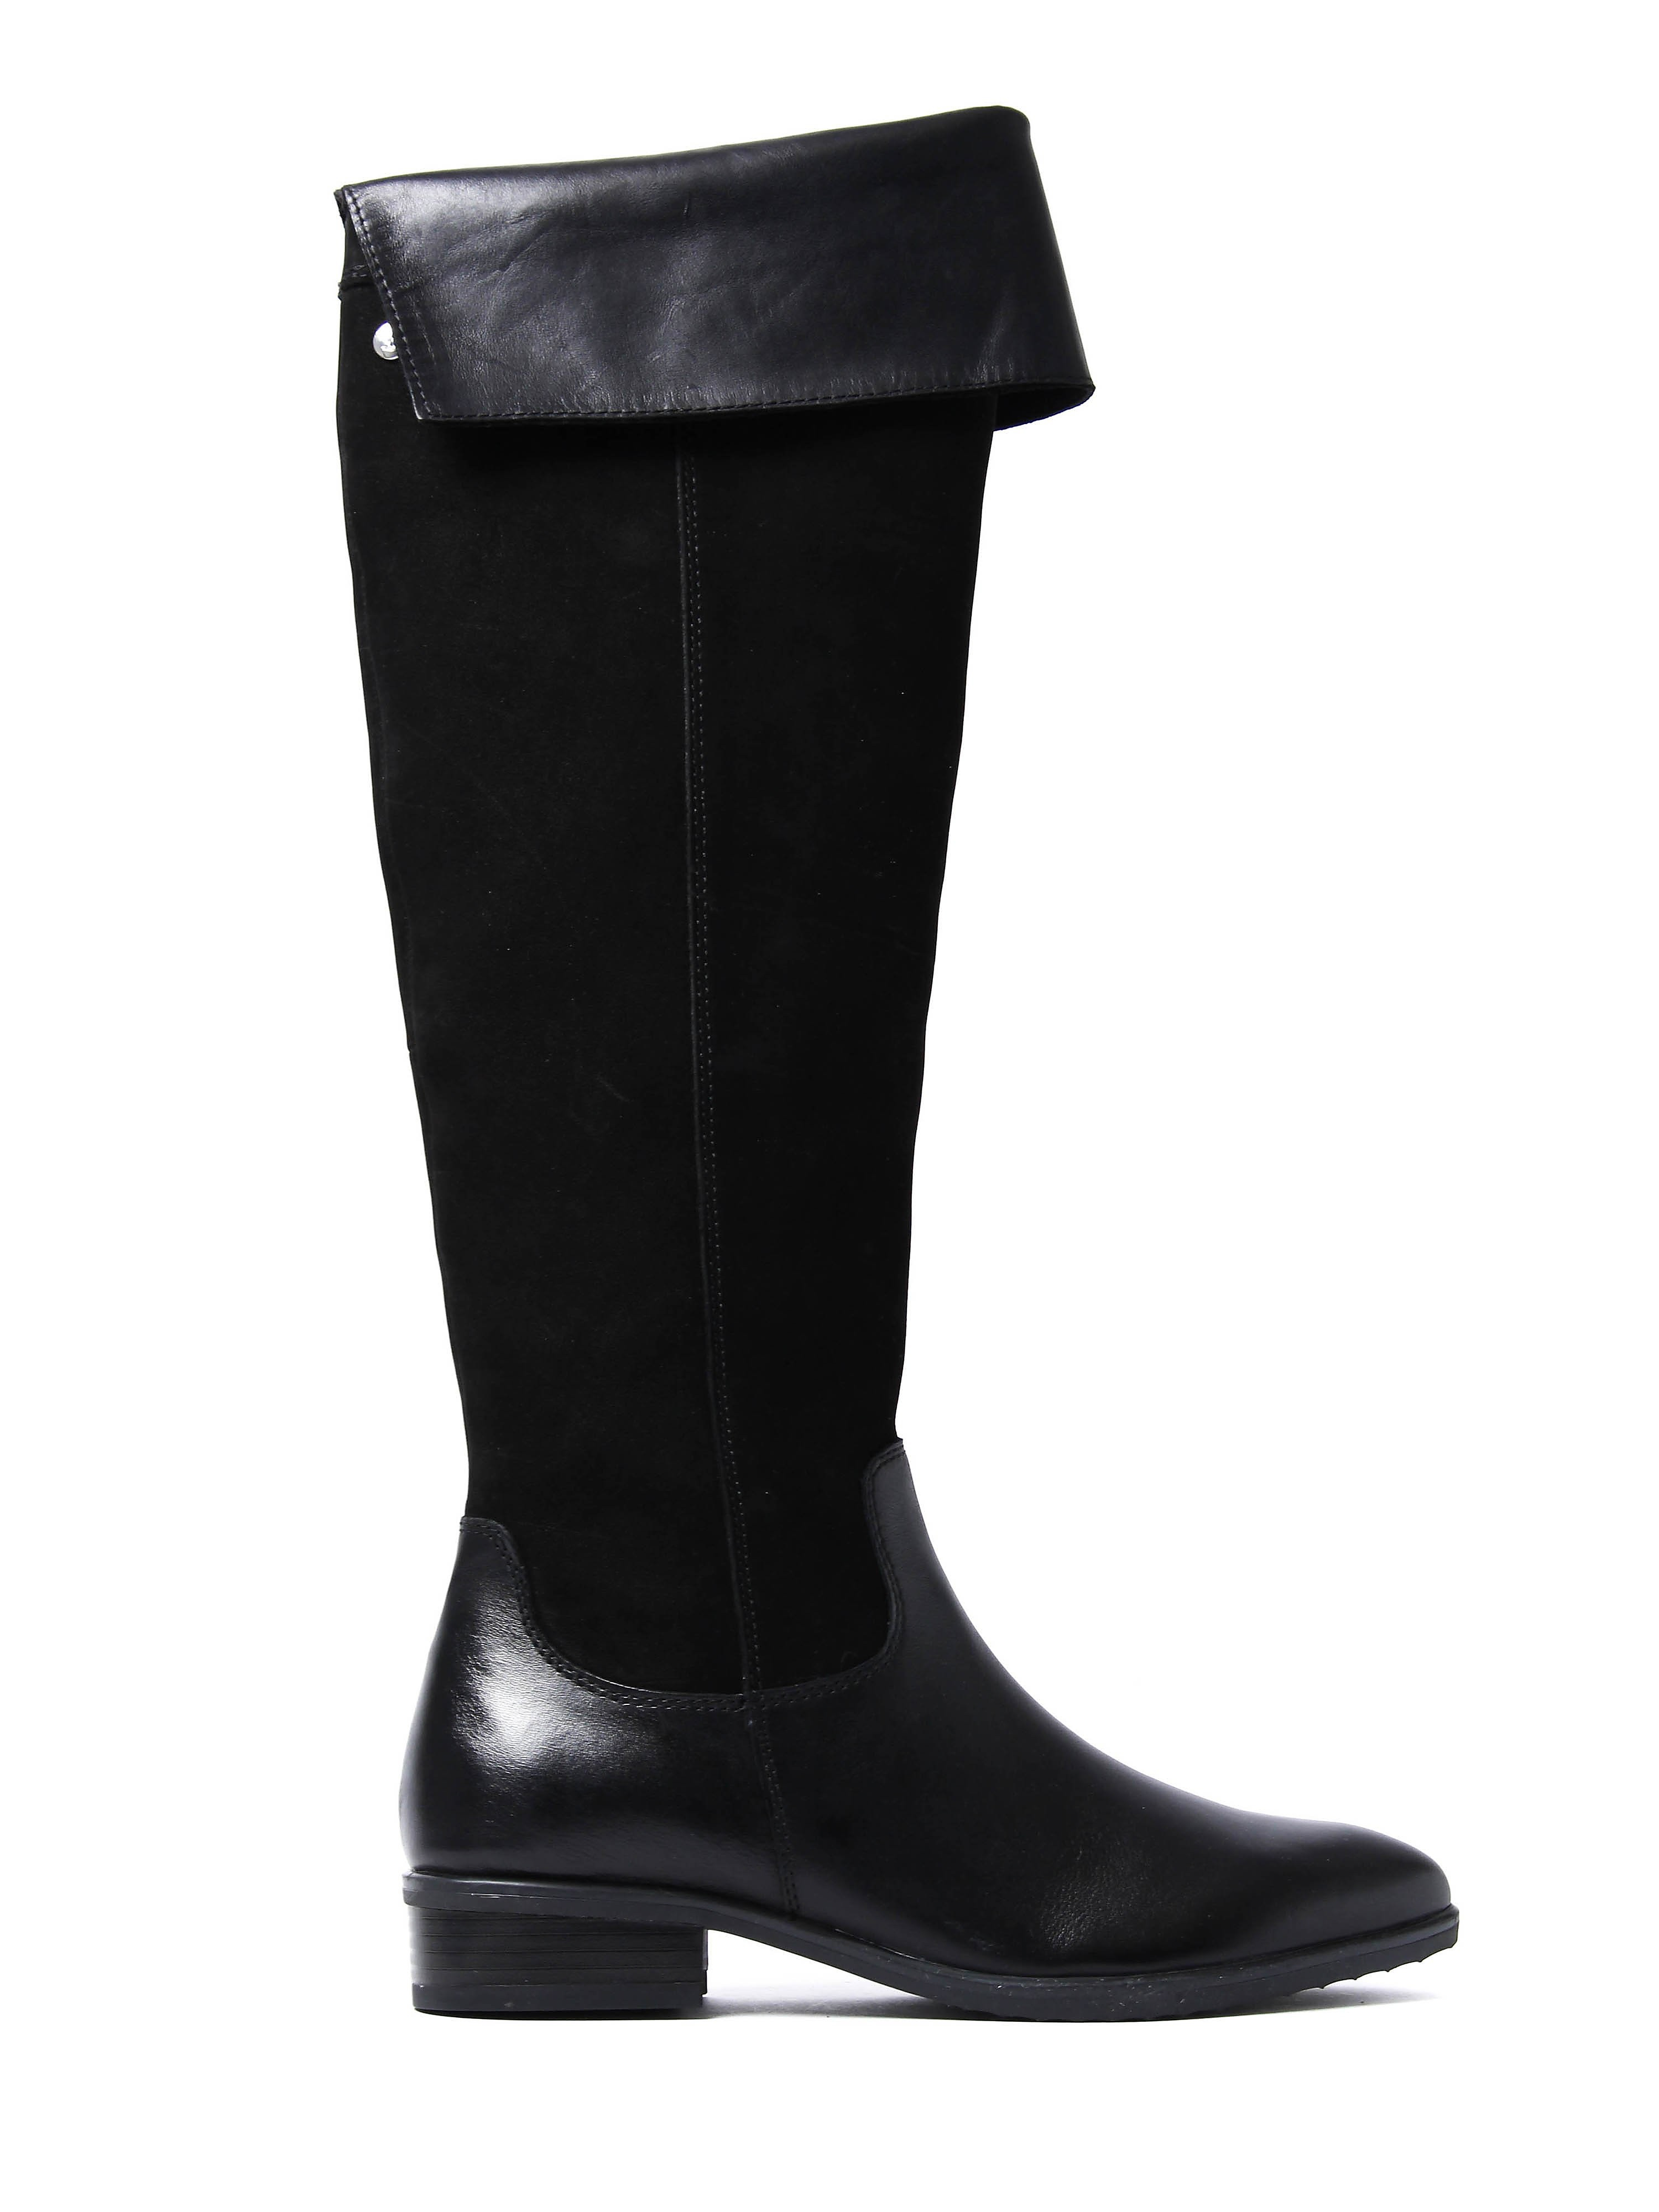 Caprice Women's Over The Knee Tall Boots - Black Suede